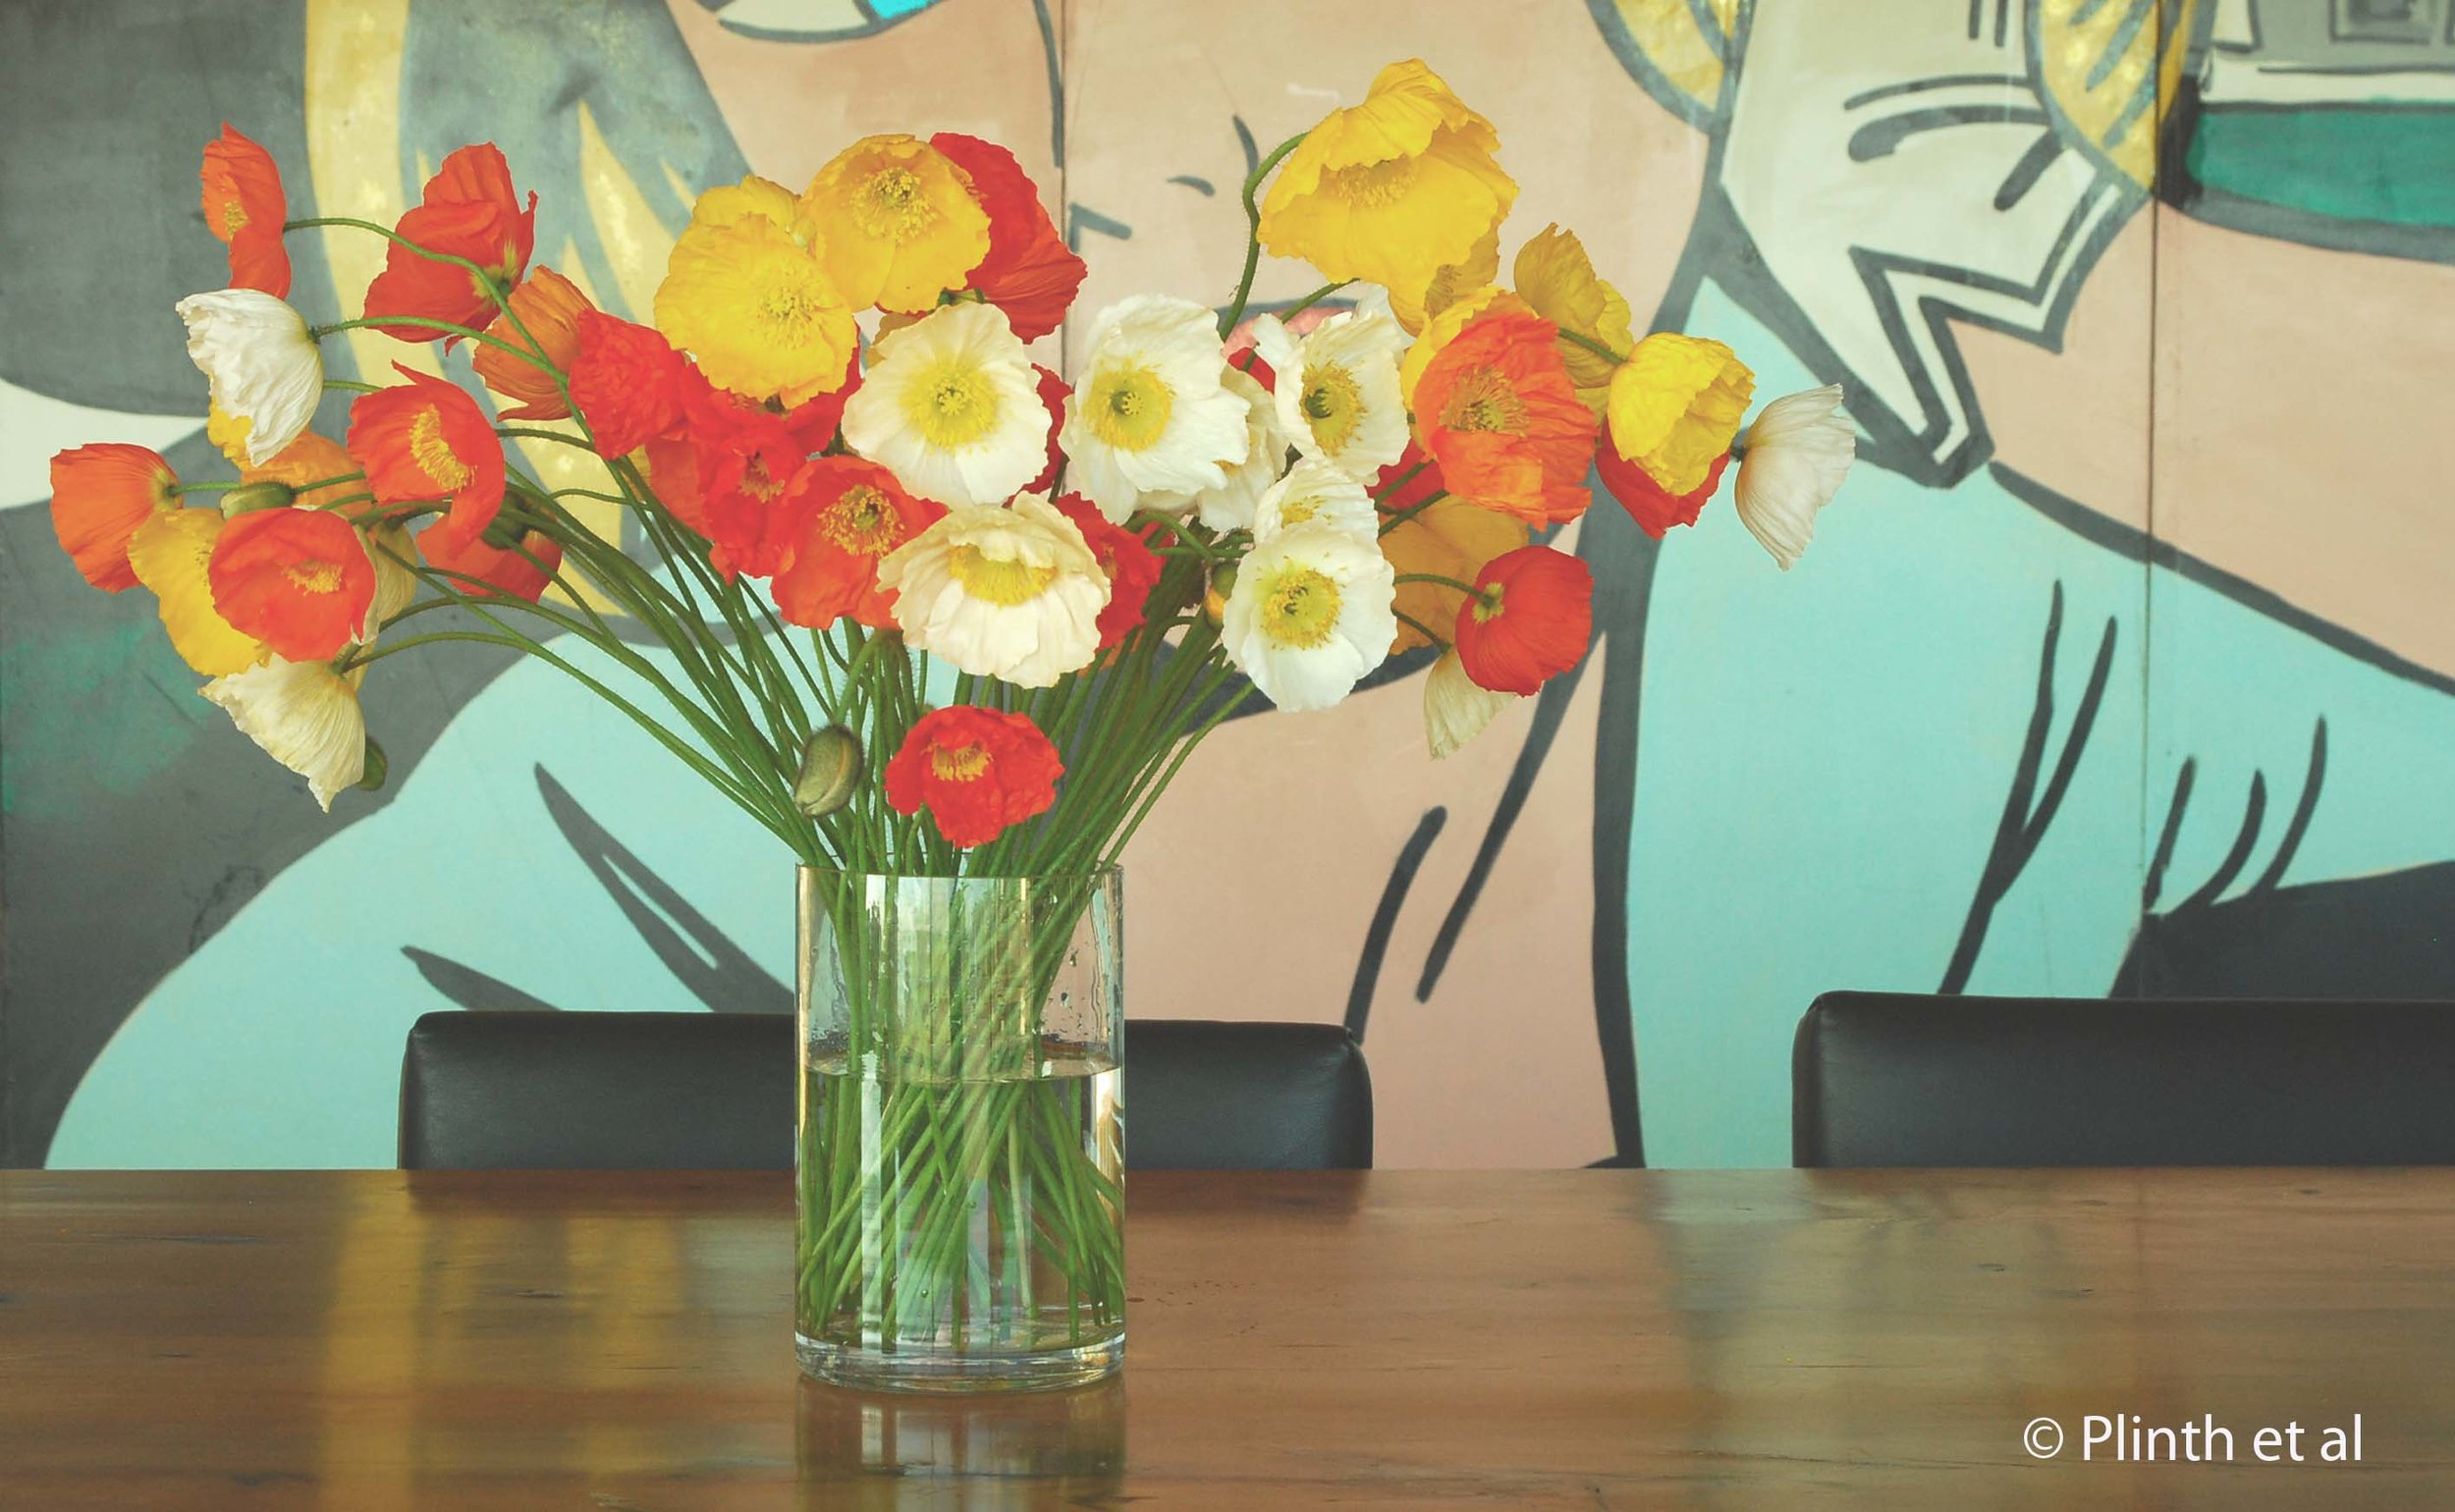 Cut Iceland poppies stand out against the pop art painting (private home, Tasmania, Australia)